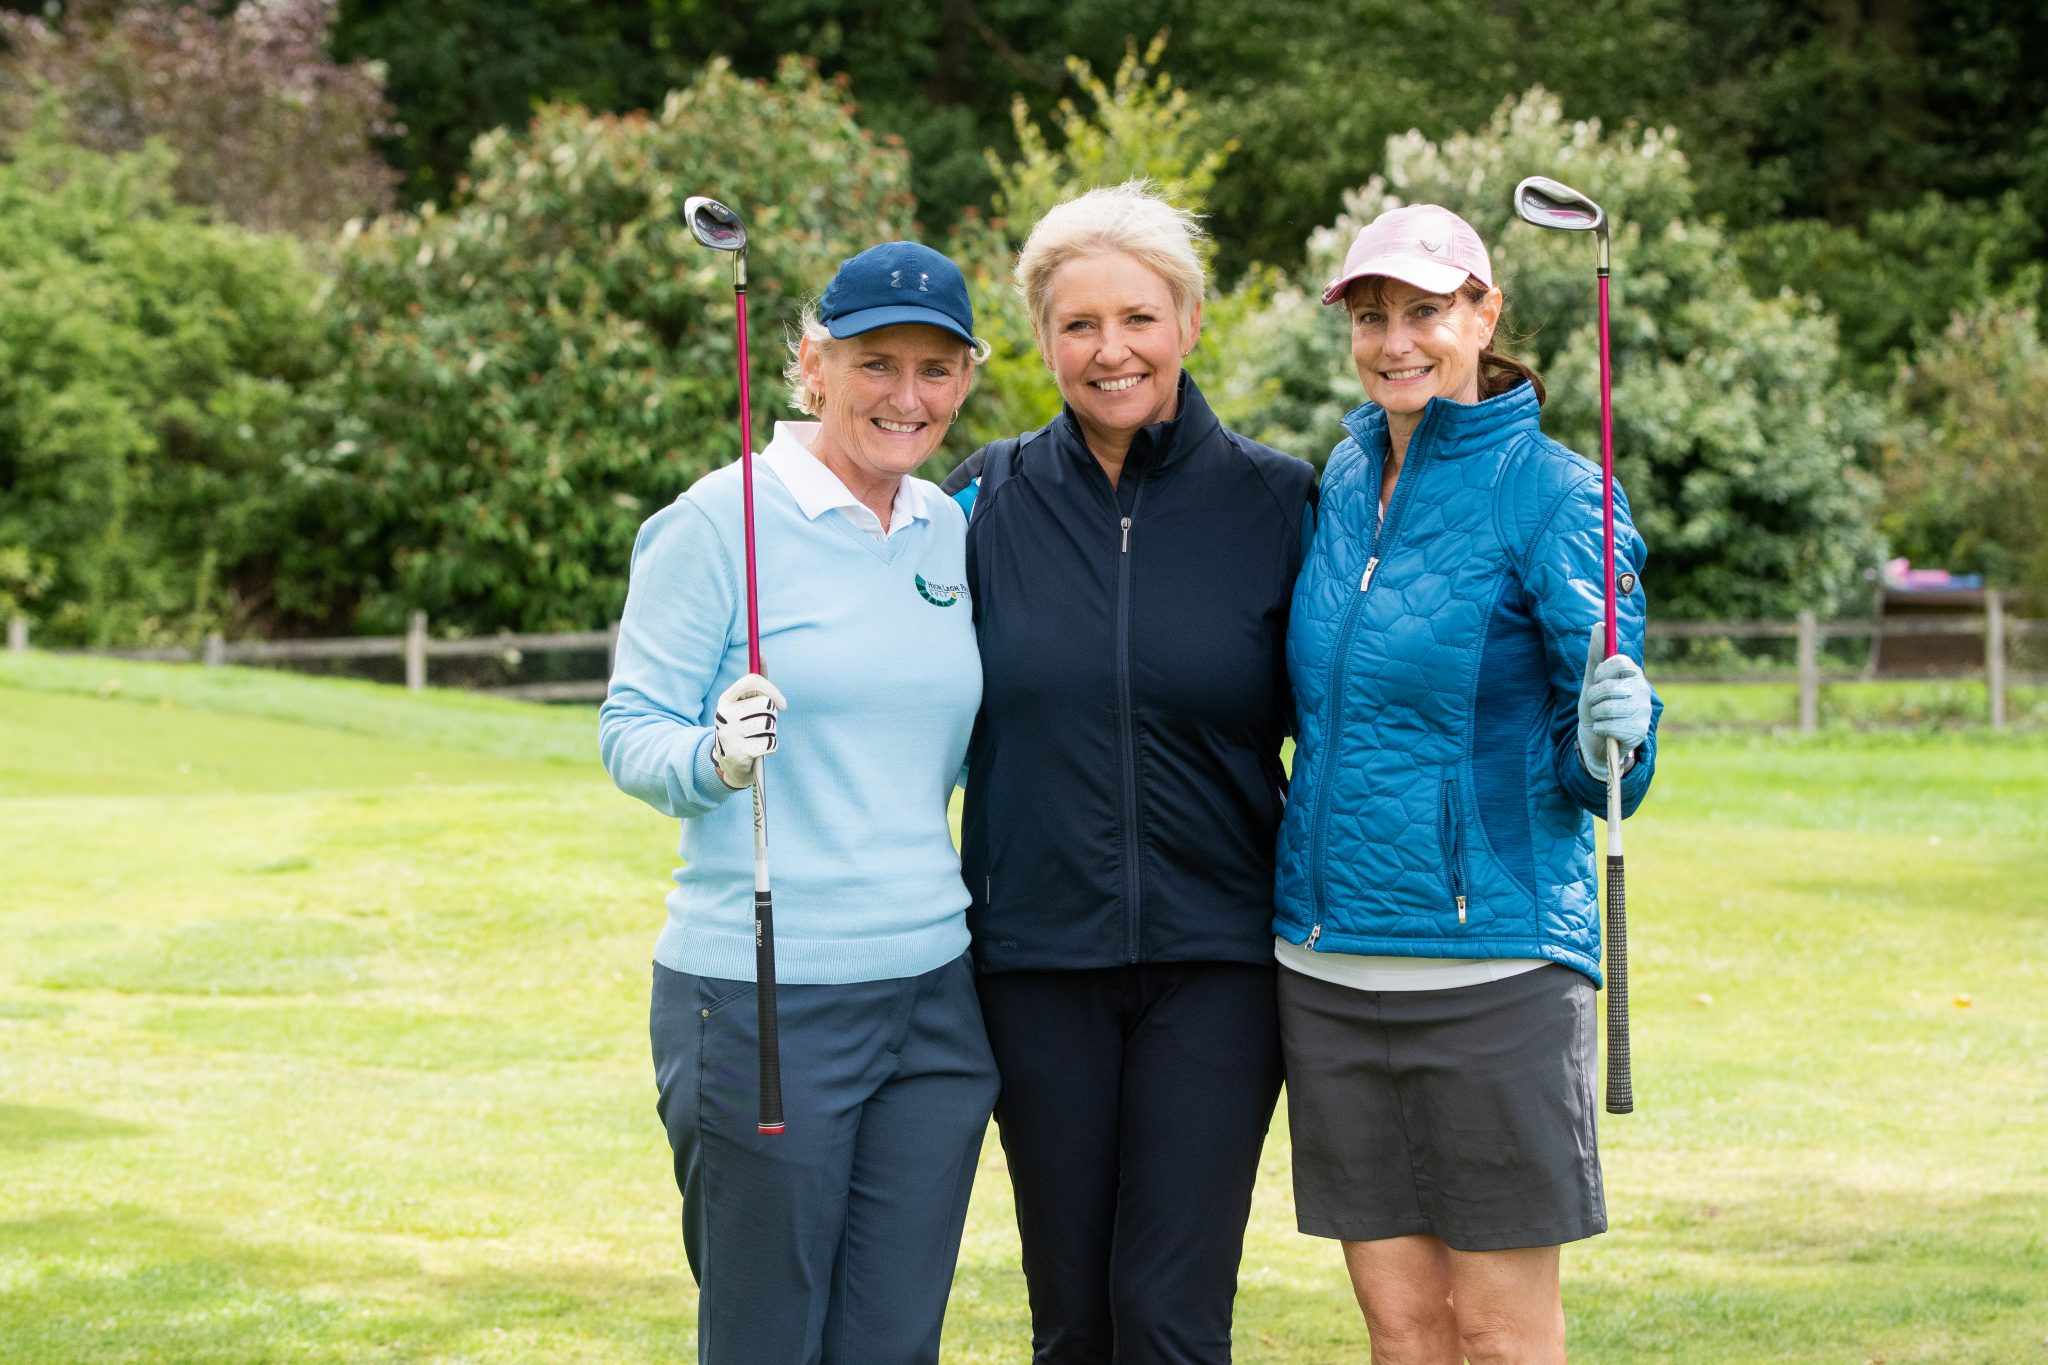 Women's County Champions descend on Woodhall Spa